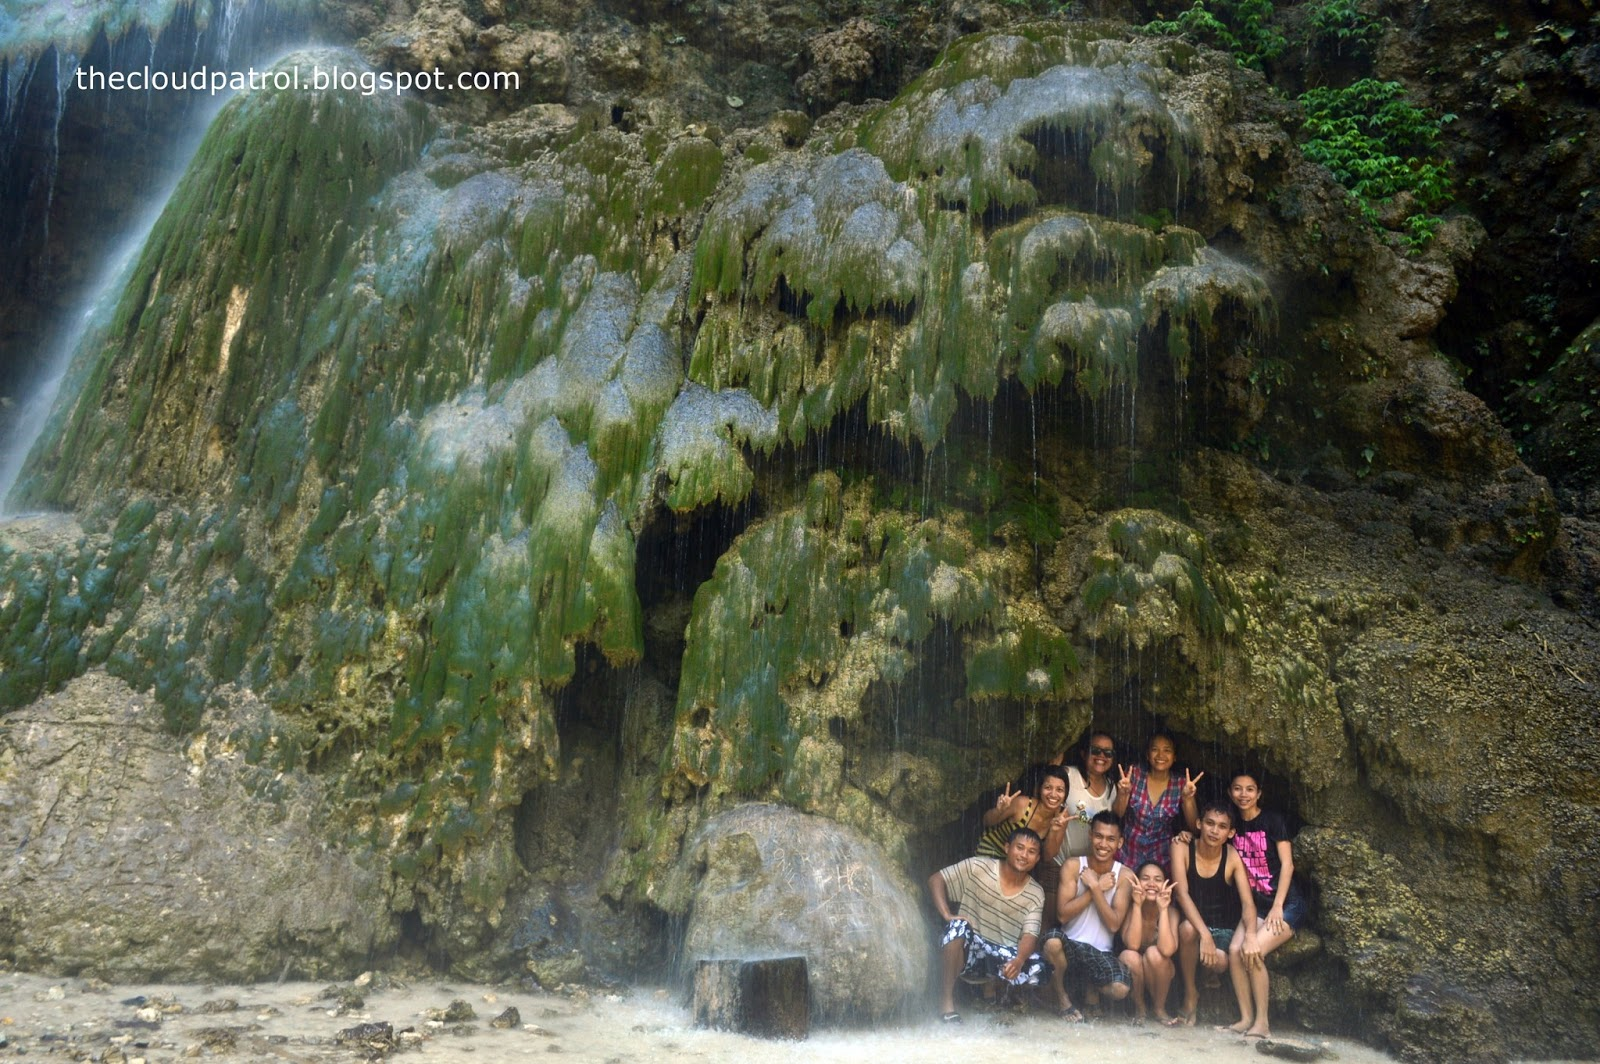 Butanding, whale shark, cebu, oslob, philippines, Tumalog, Waterfalls, mountain, hiking, hike, treking, trek